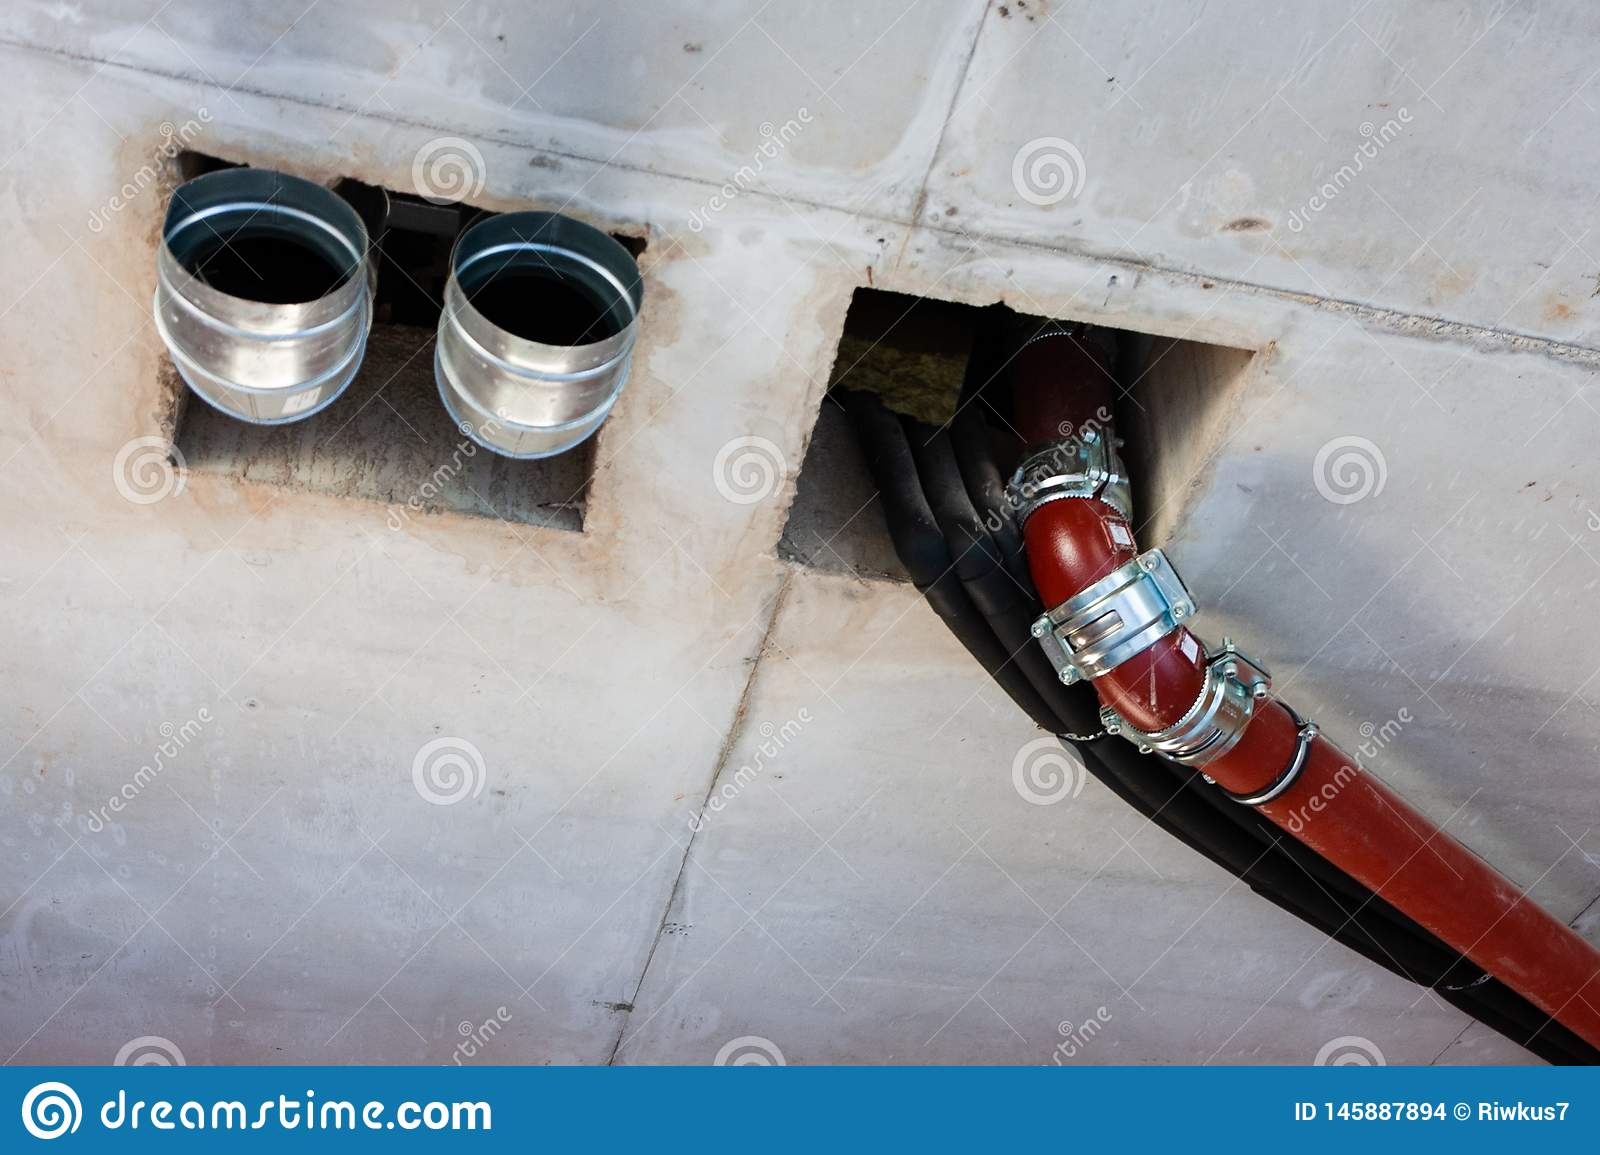 Pipes of sewage, ventilation, water supply in the created interior